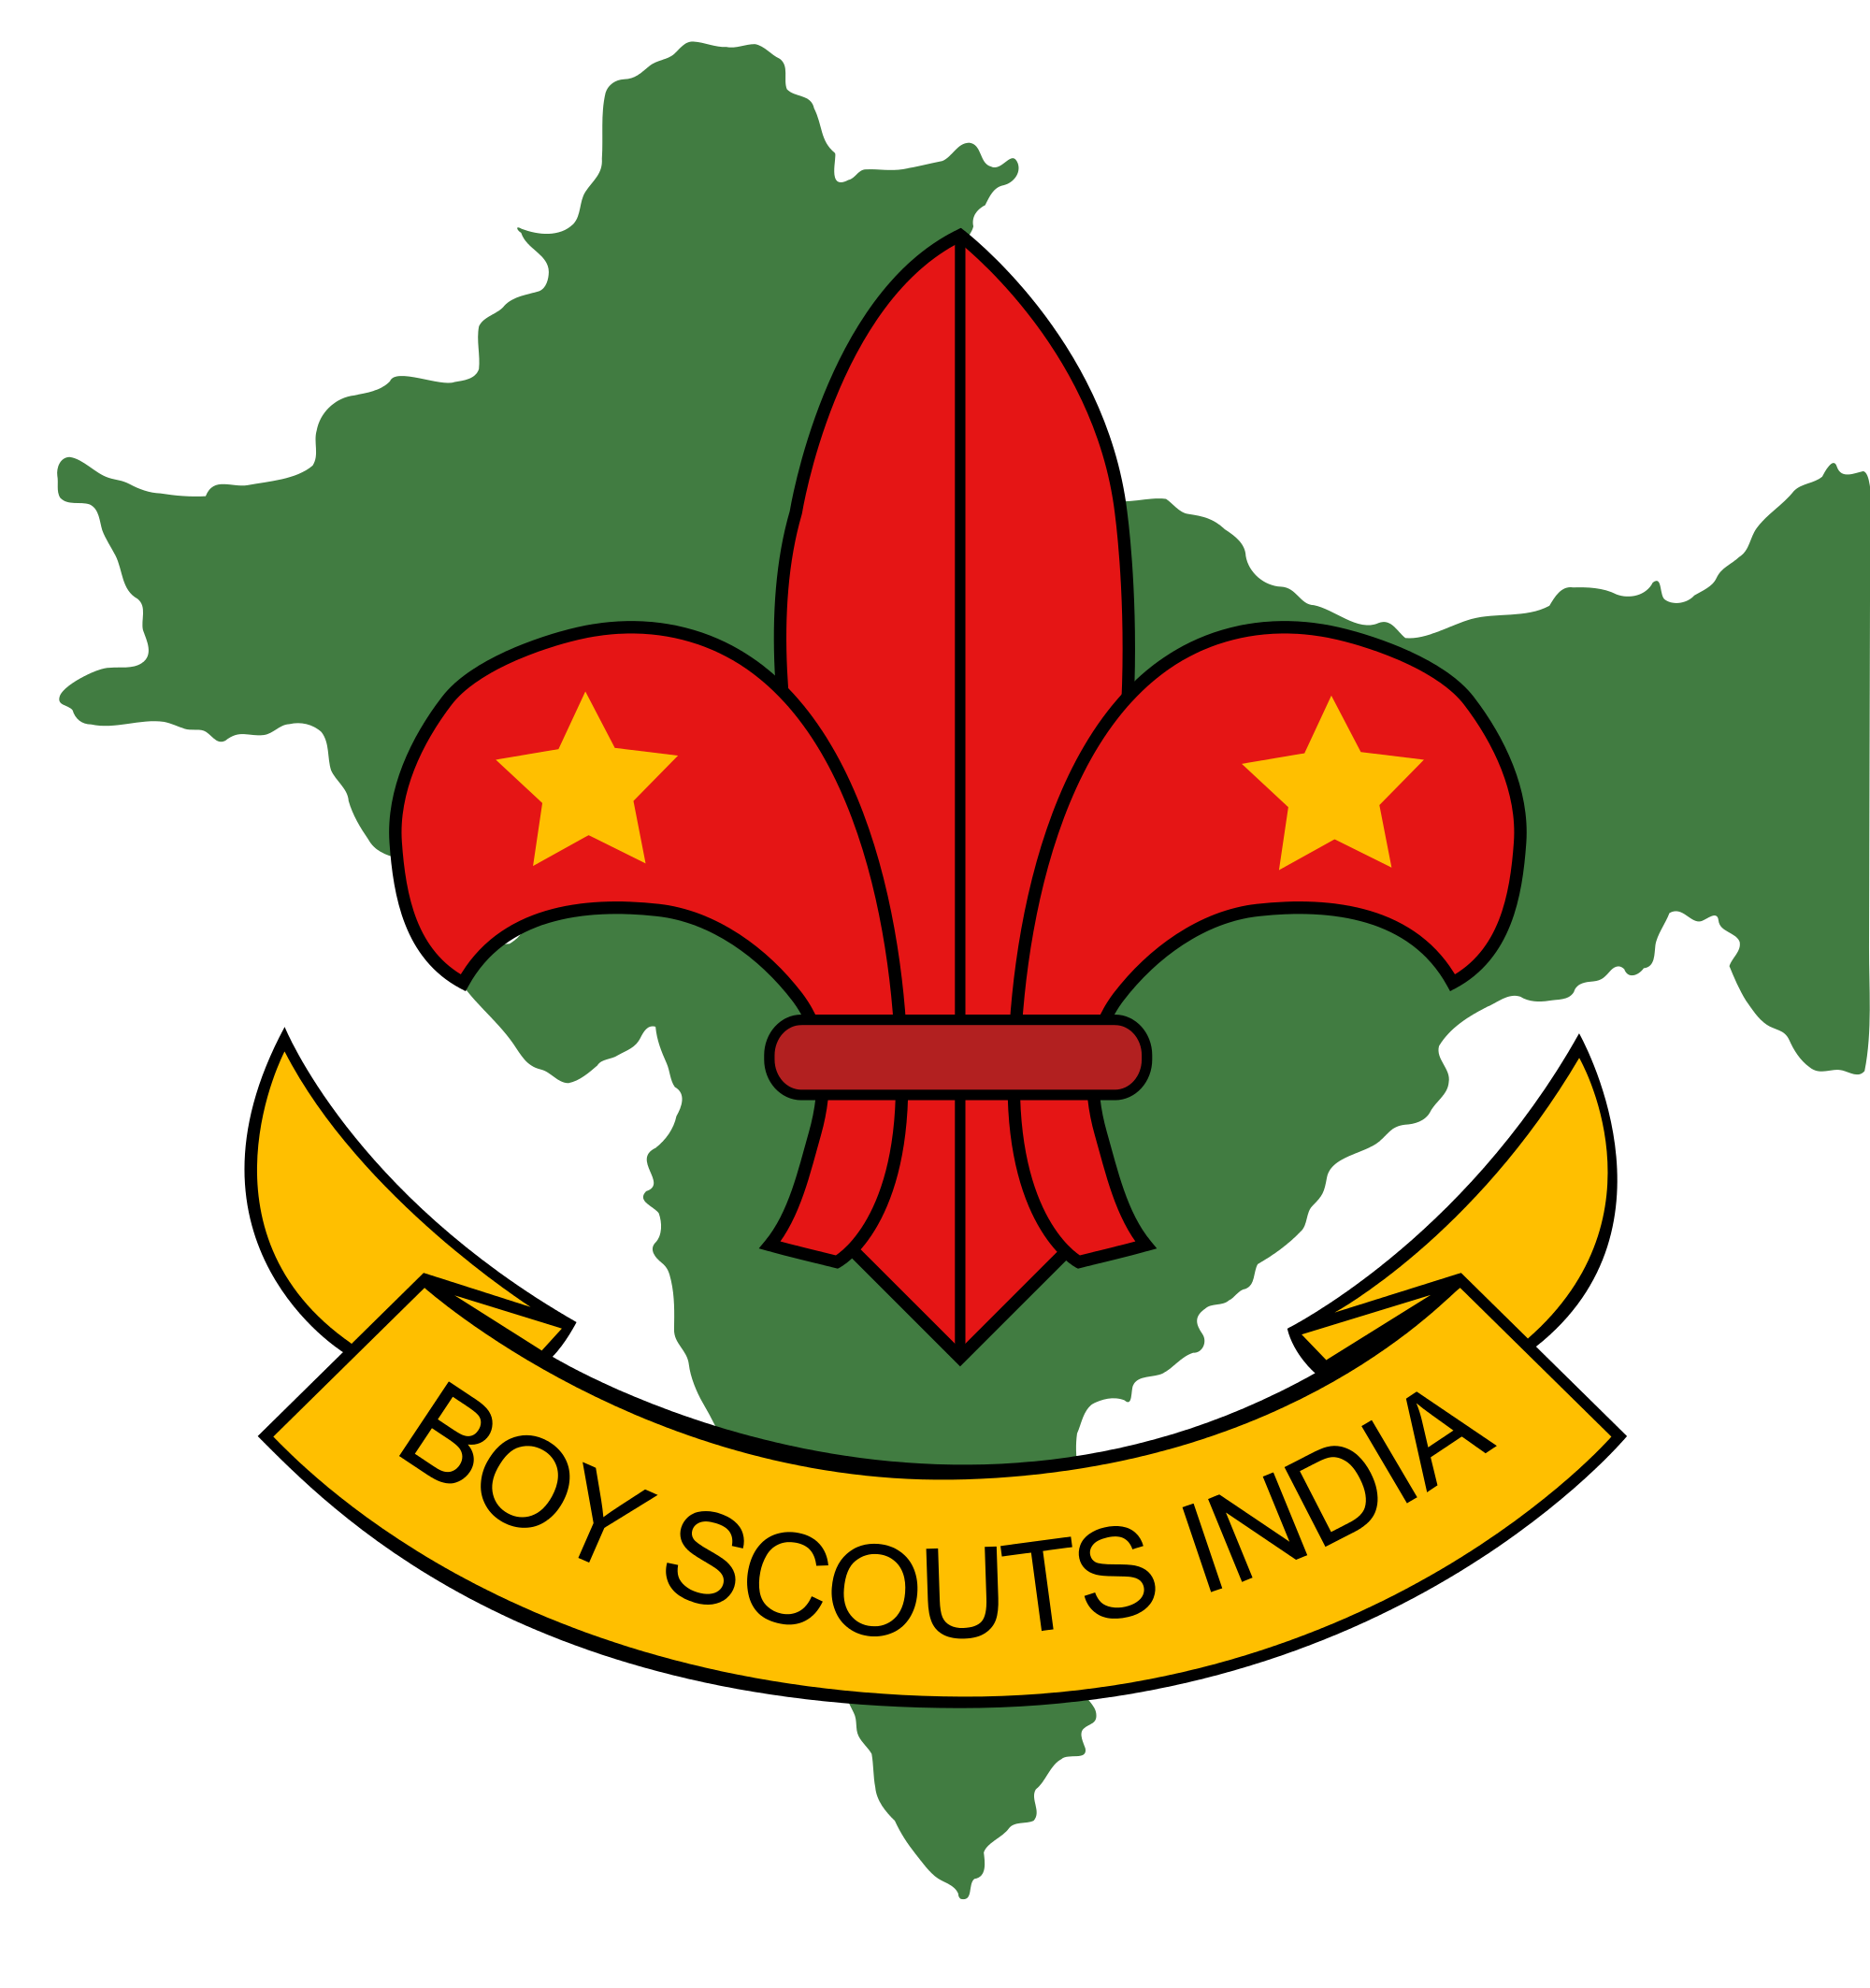 Clipart tent scouting activity. Boy scouts association in